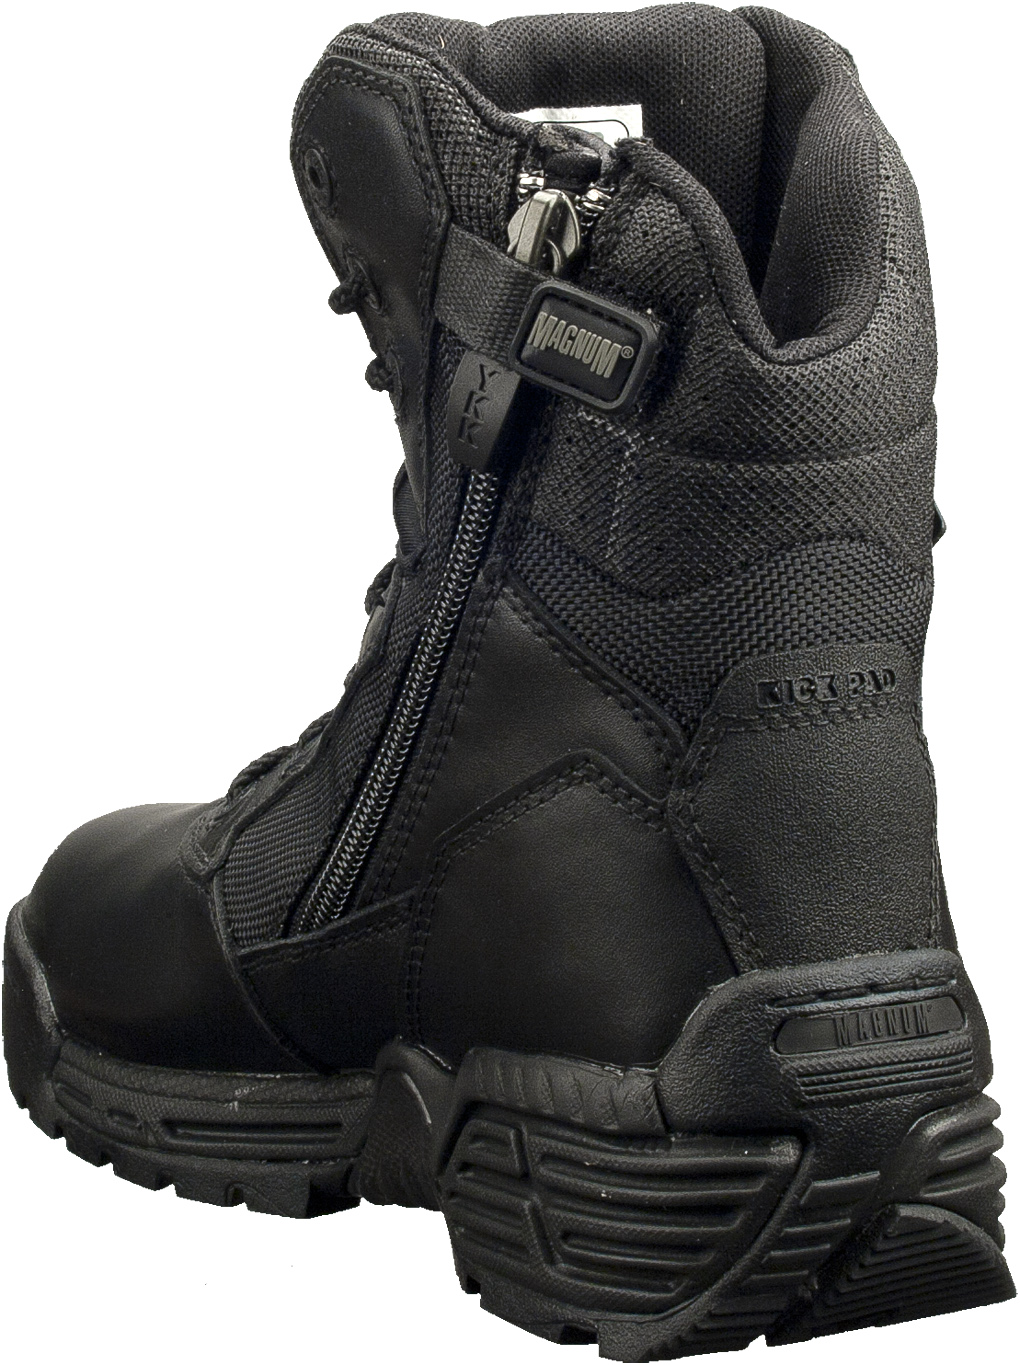 "Magnum Womens 8"" STEALTH FORCE 8.0 SZ WPI Black Police Army ..."